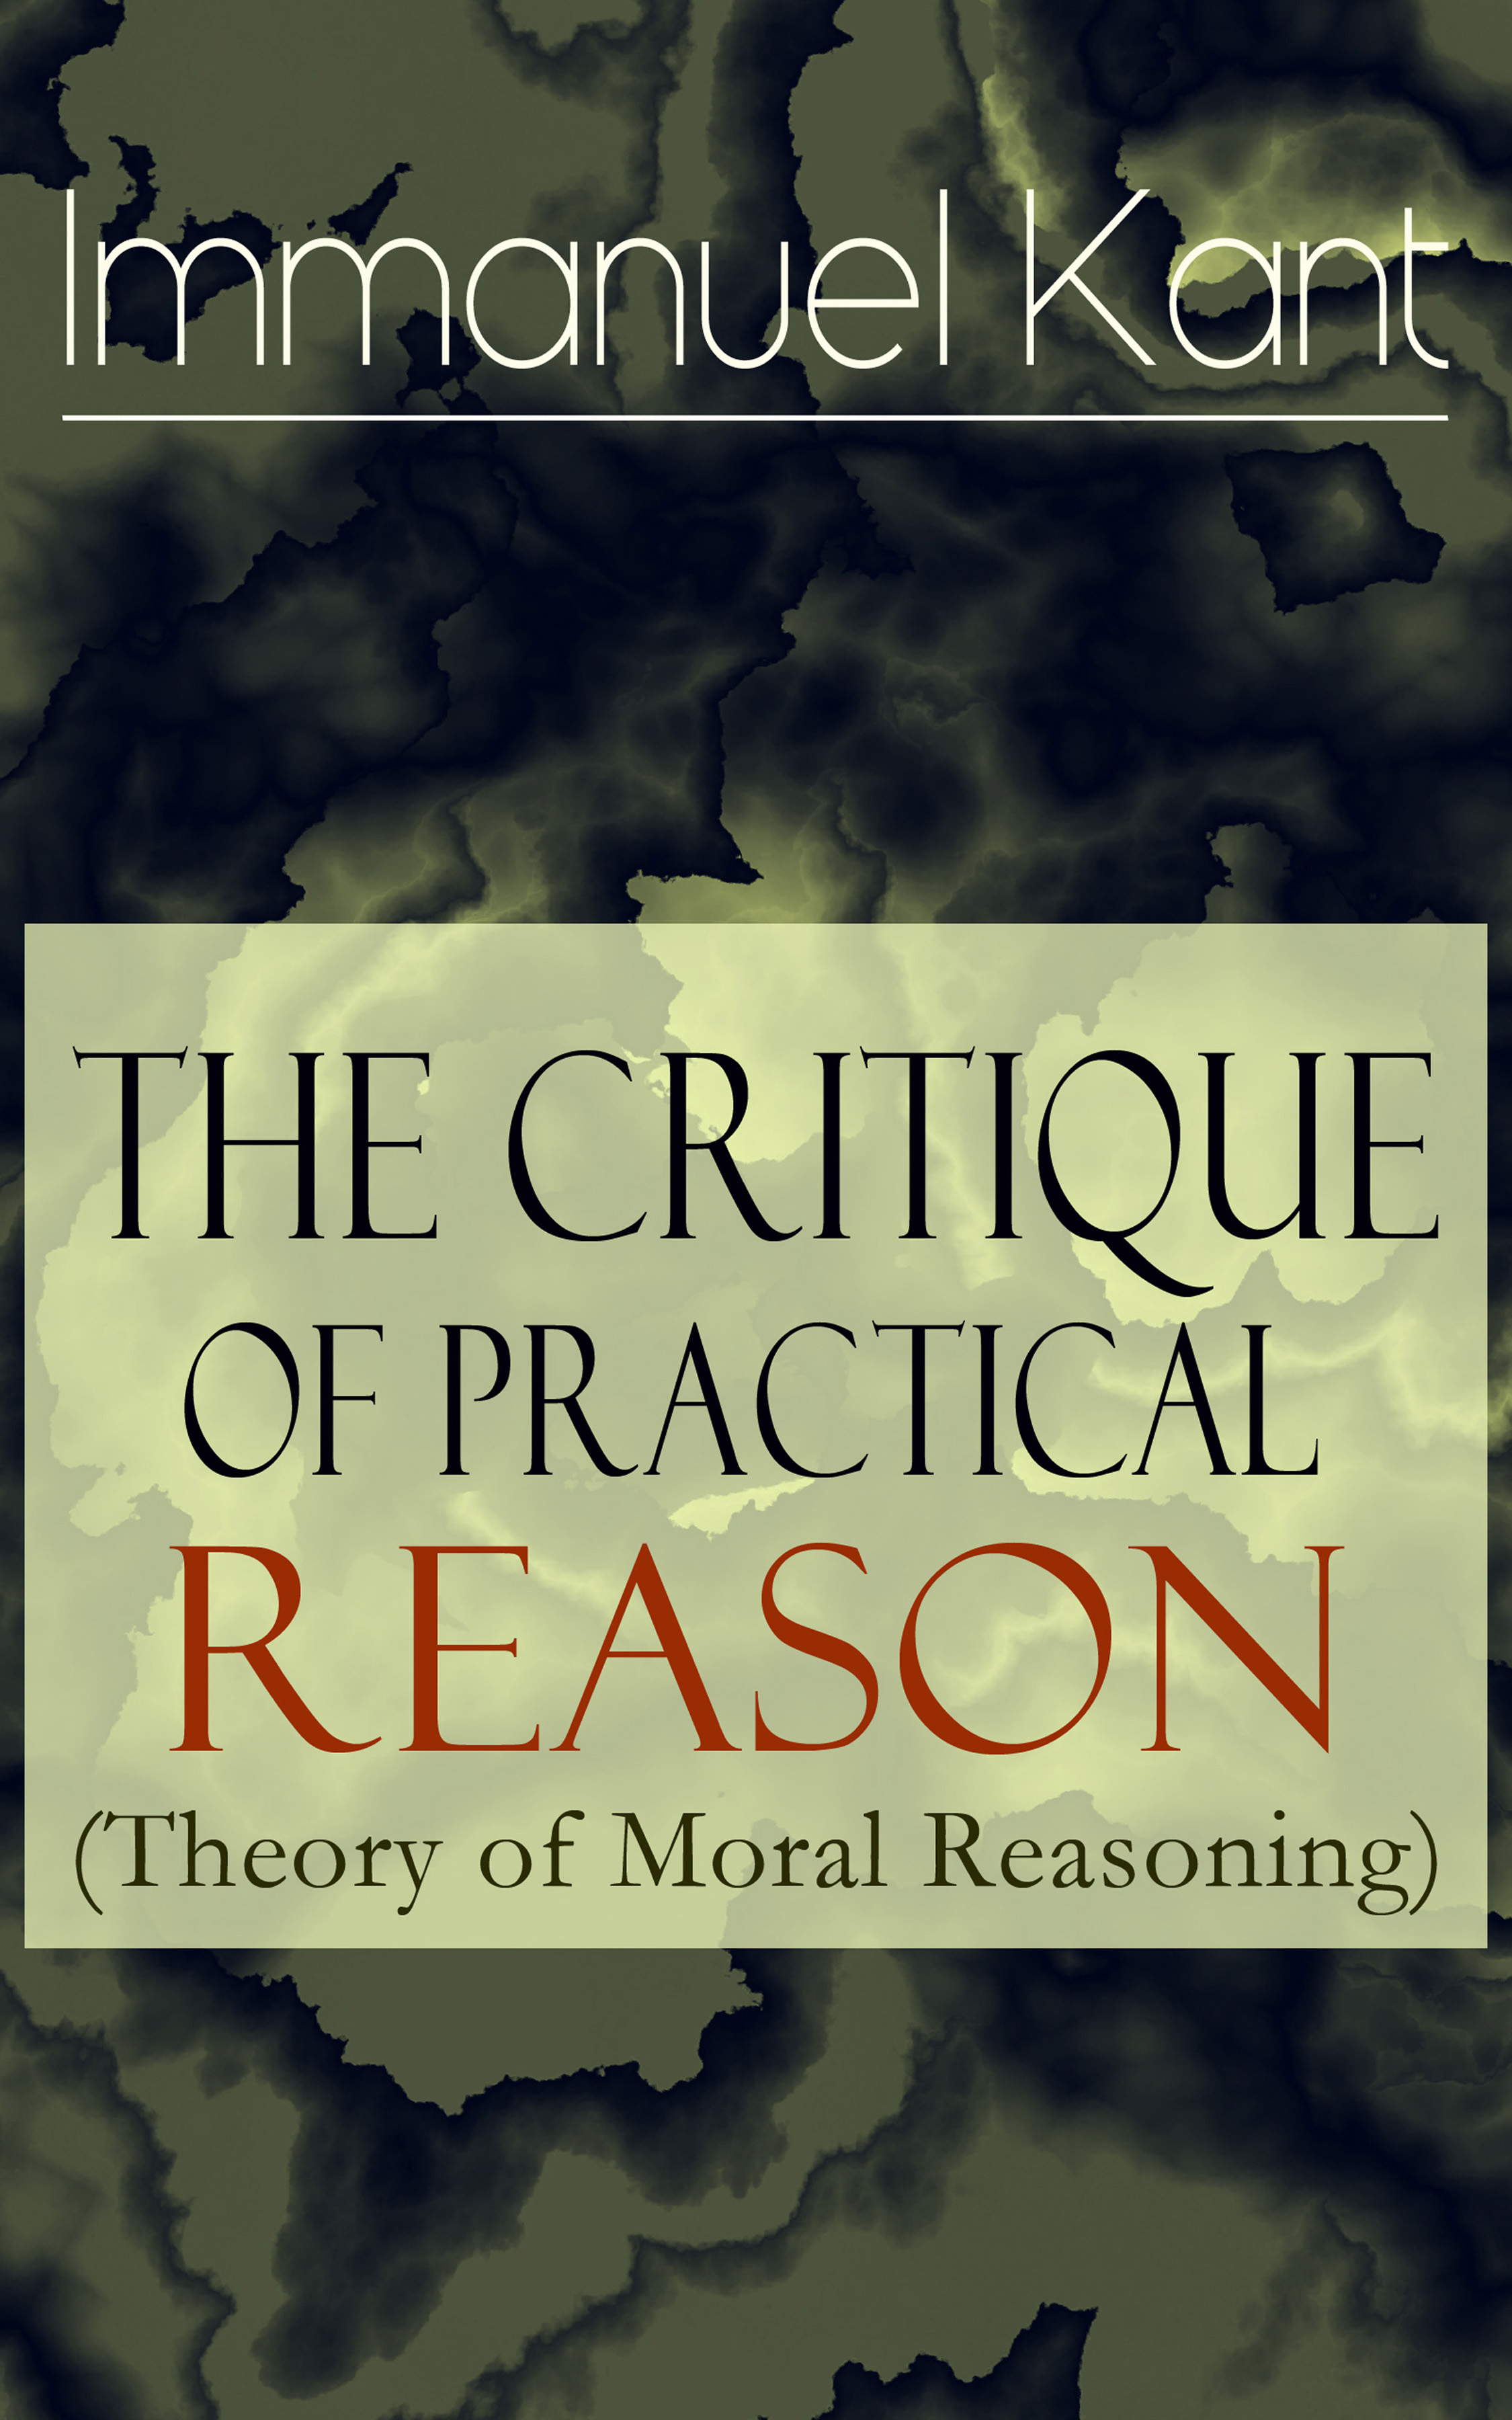 Immanuel Kant The Critique of Practical Reason (Theory of Moral Reasoning): From the Author of Critique of Pure Reason, Critique of Judgment, Dreams of a Spirit-Seer, Perpetual Peace & Fundamental Principles of the Metaphysics of Morals